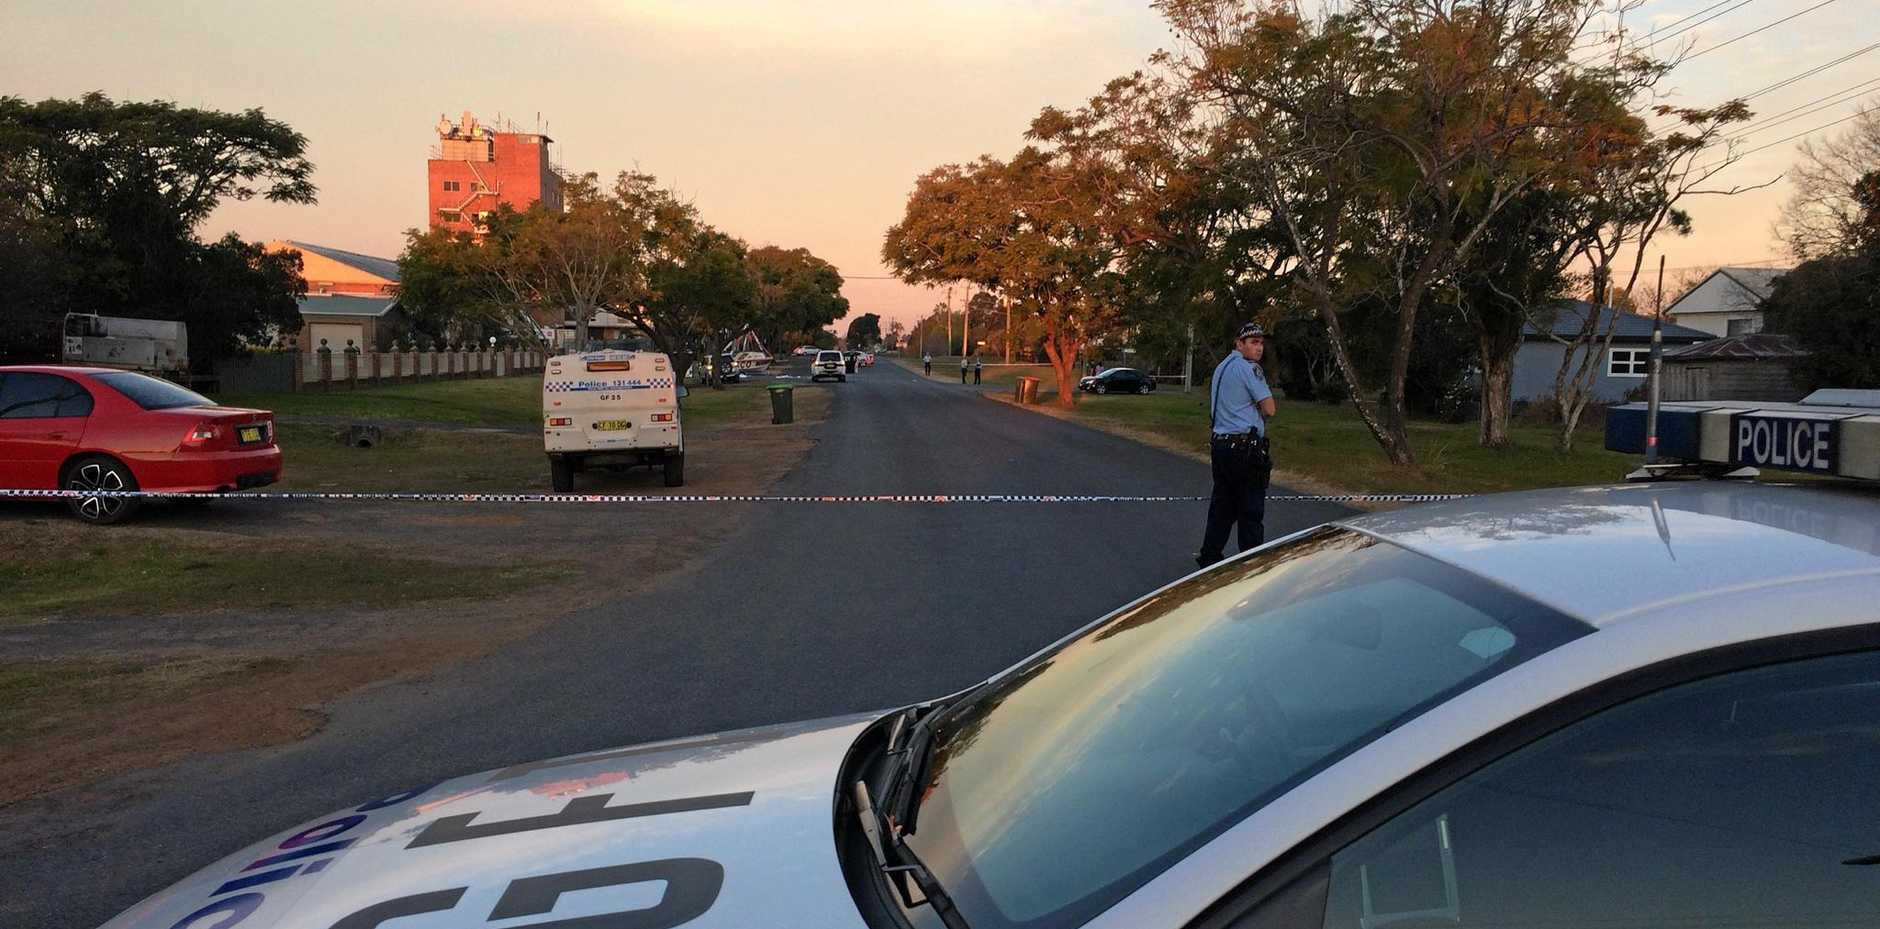 A critical incident investigation was launched after a man was shot during a confrontation with police in North St, Grafton on Sunday, 6th August, 2017.